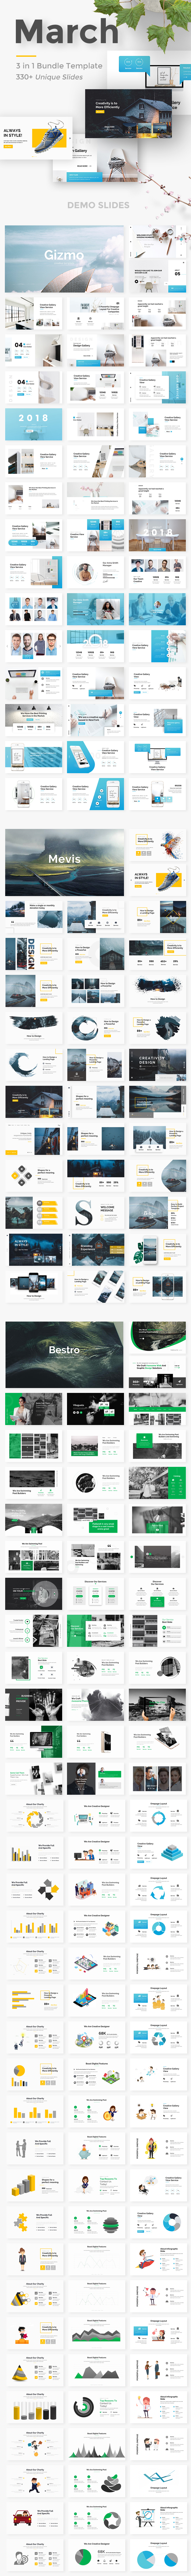 3 in 1 March Bundle Google Slide Template - Google Slides Presentation Templates